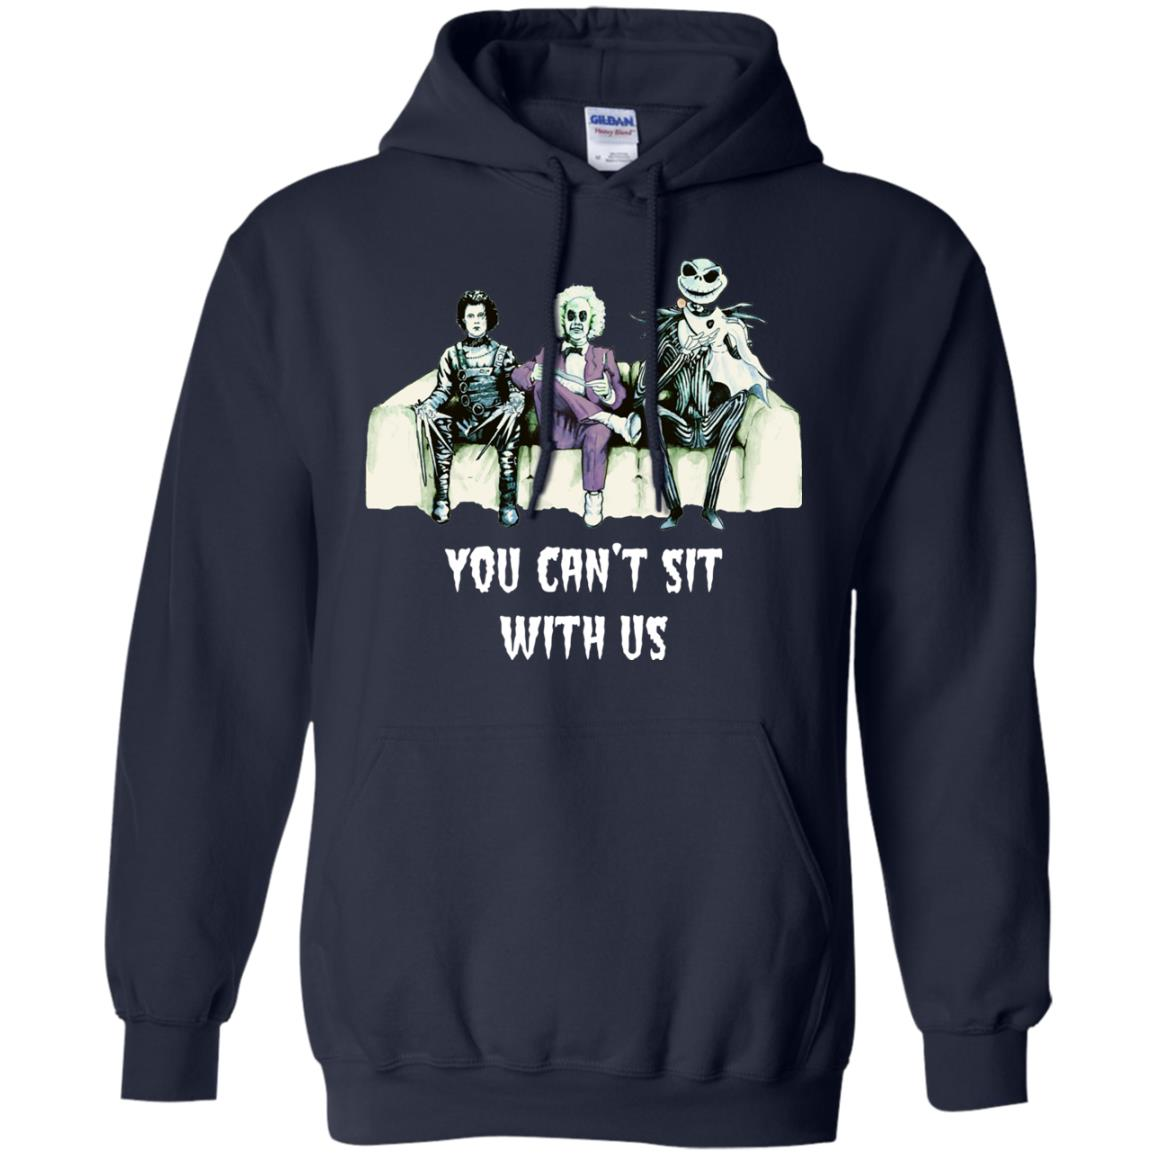 image 1278px Beetlejuice, Edward, Jack: You can't sit with us t shirt, hoodies, tank top